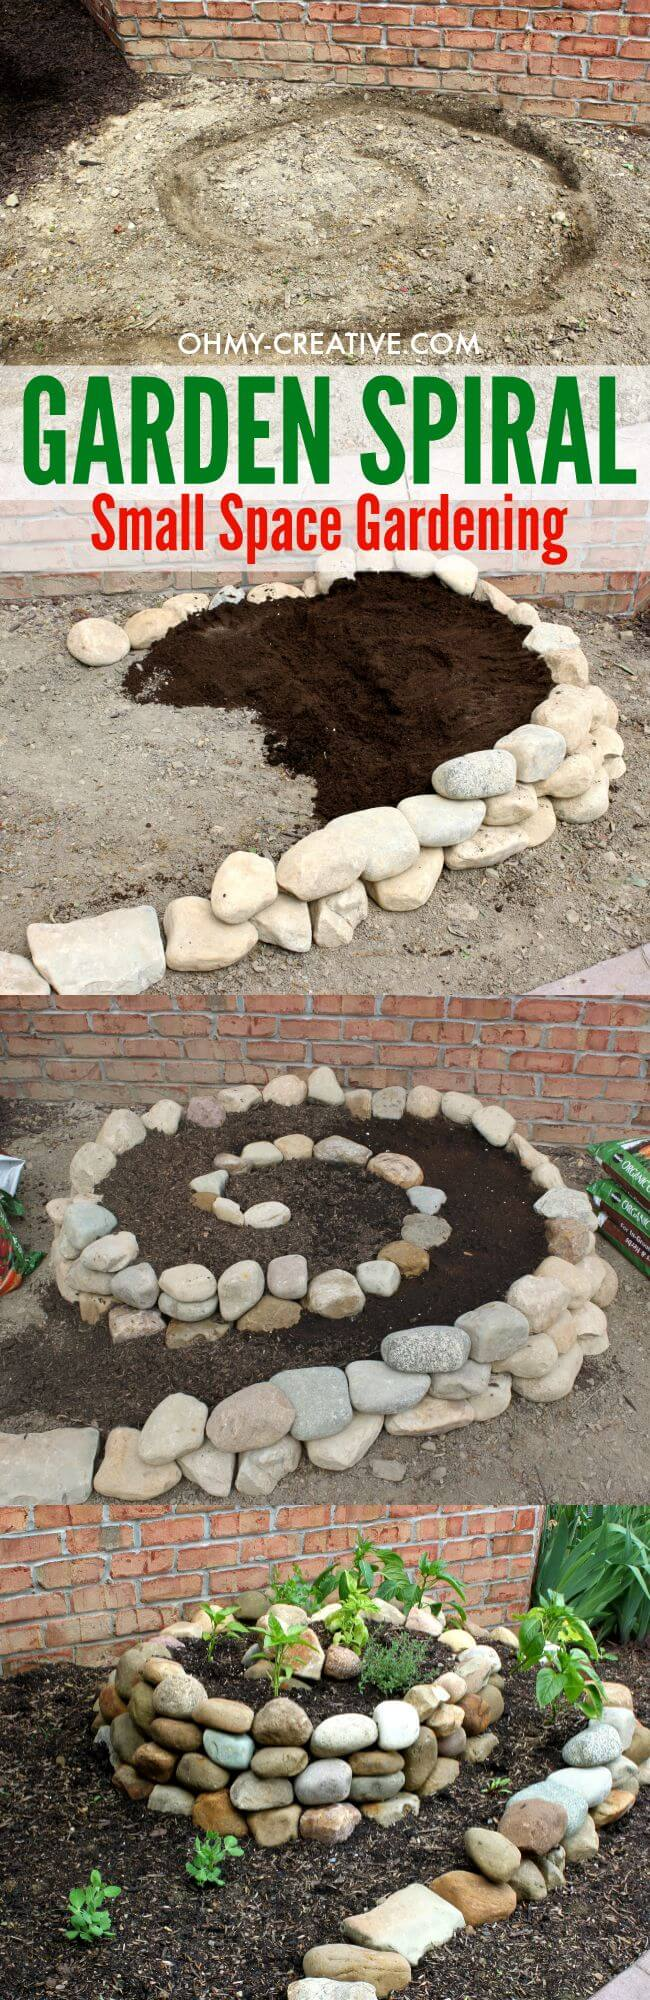 DIY Garden Spiral for Small Spaces